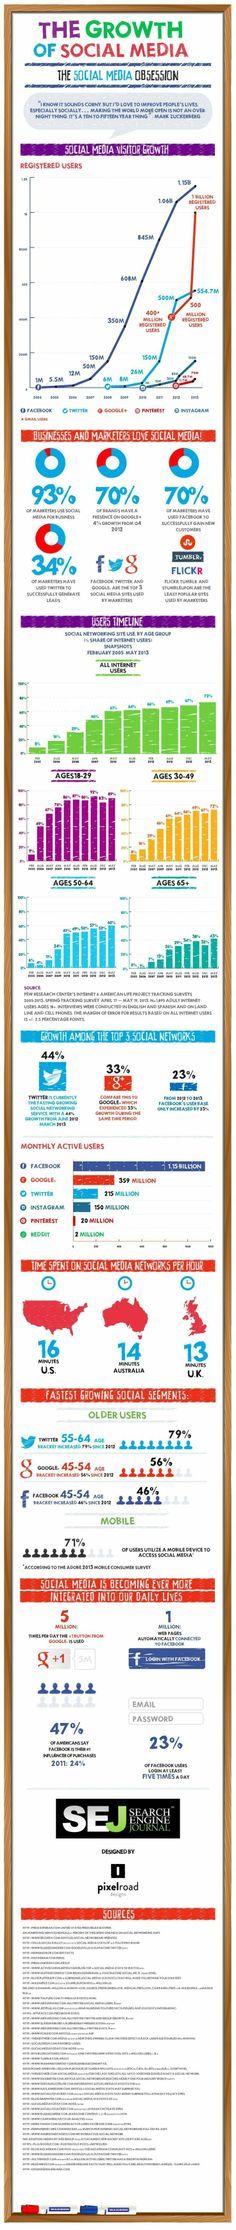 Social Media - What Does Social Media Growth Look Like? [Infographic] : MarketingProfs Article